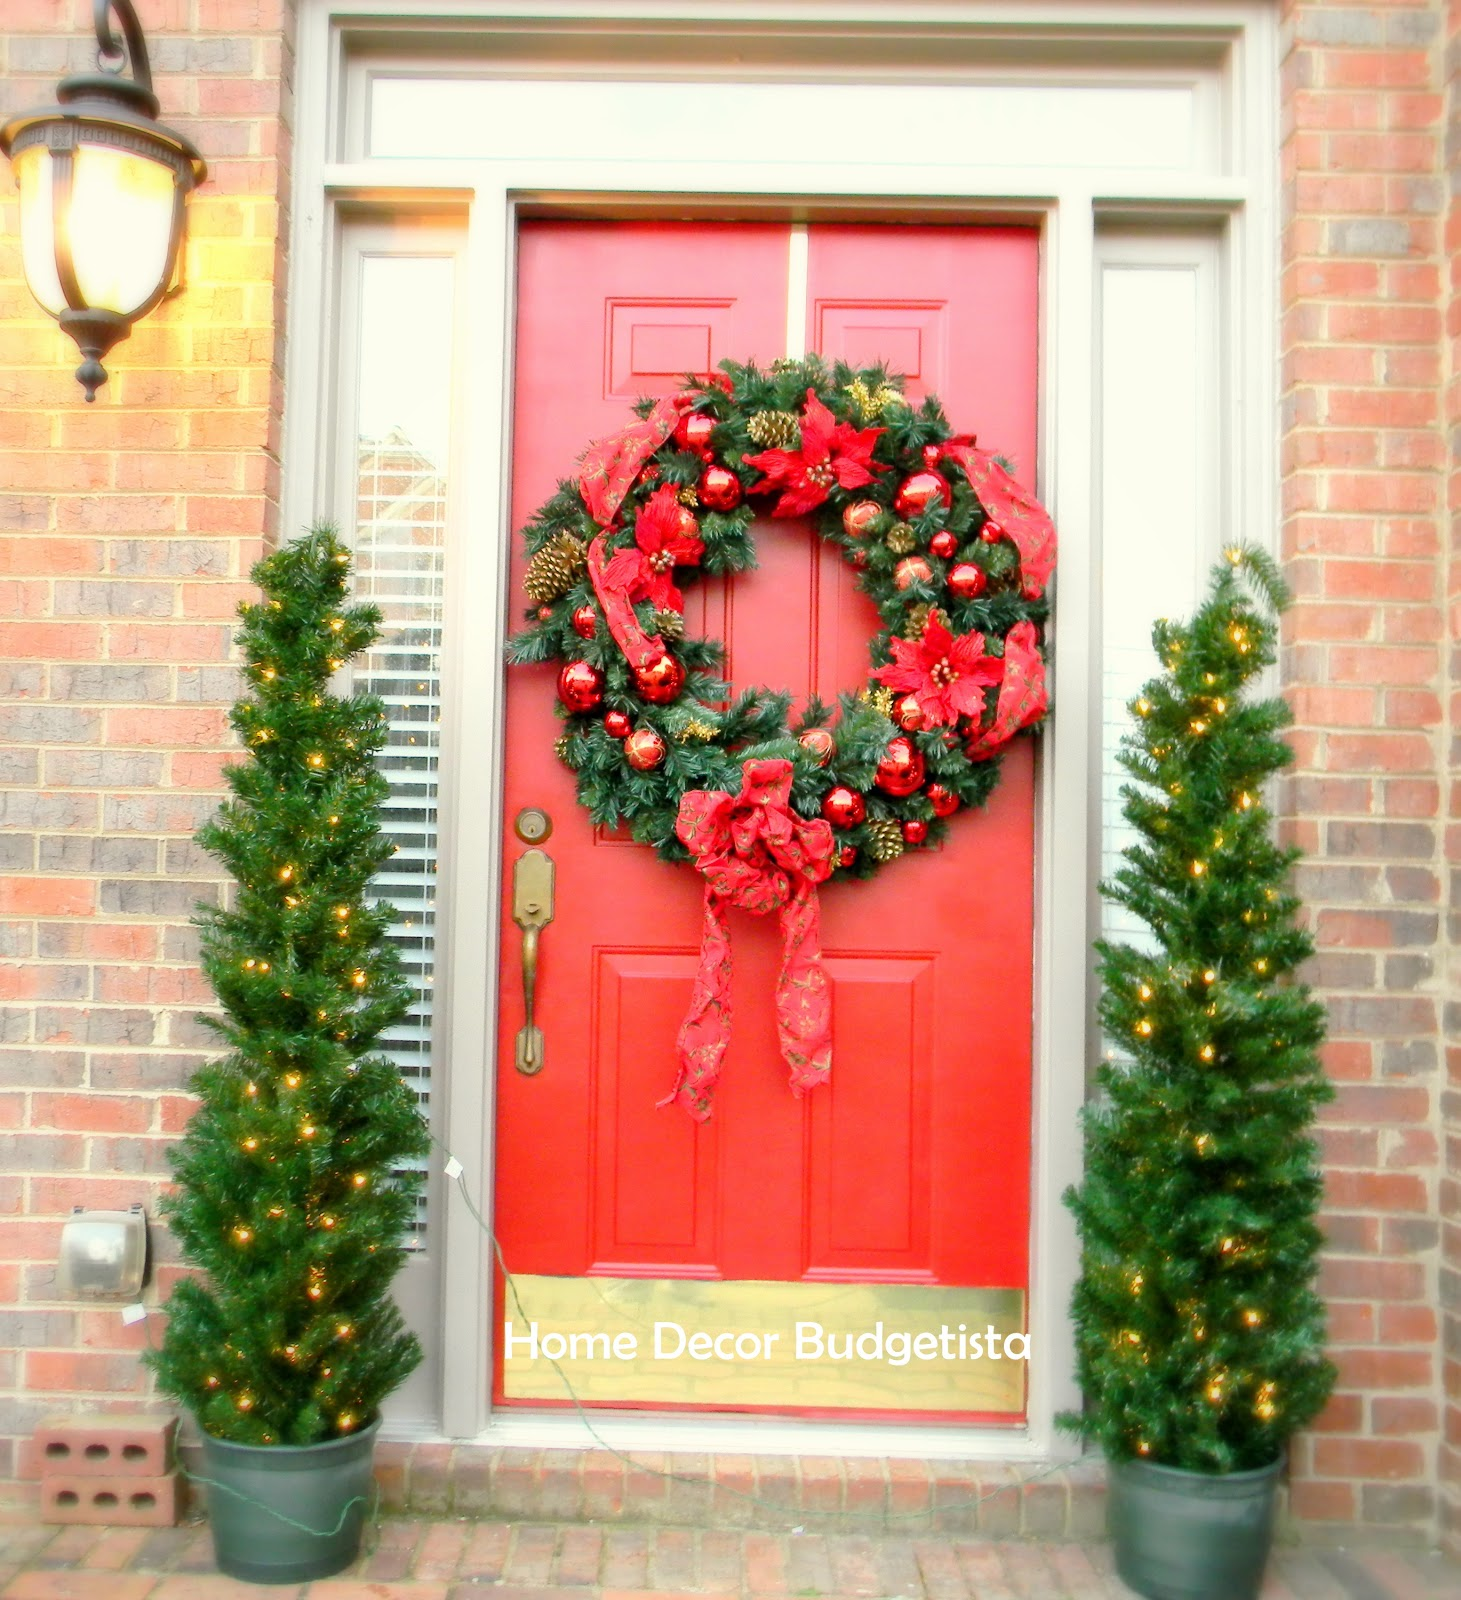 Decorating Ideas > Home Decor Budgetista Christmas Decorations ~ 010019_Christmas Decorating Ideas Doors